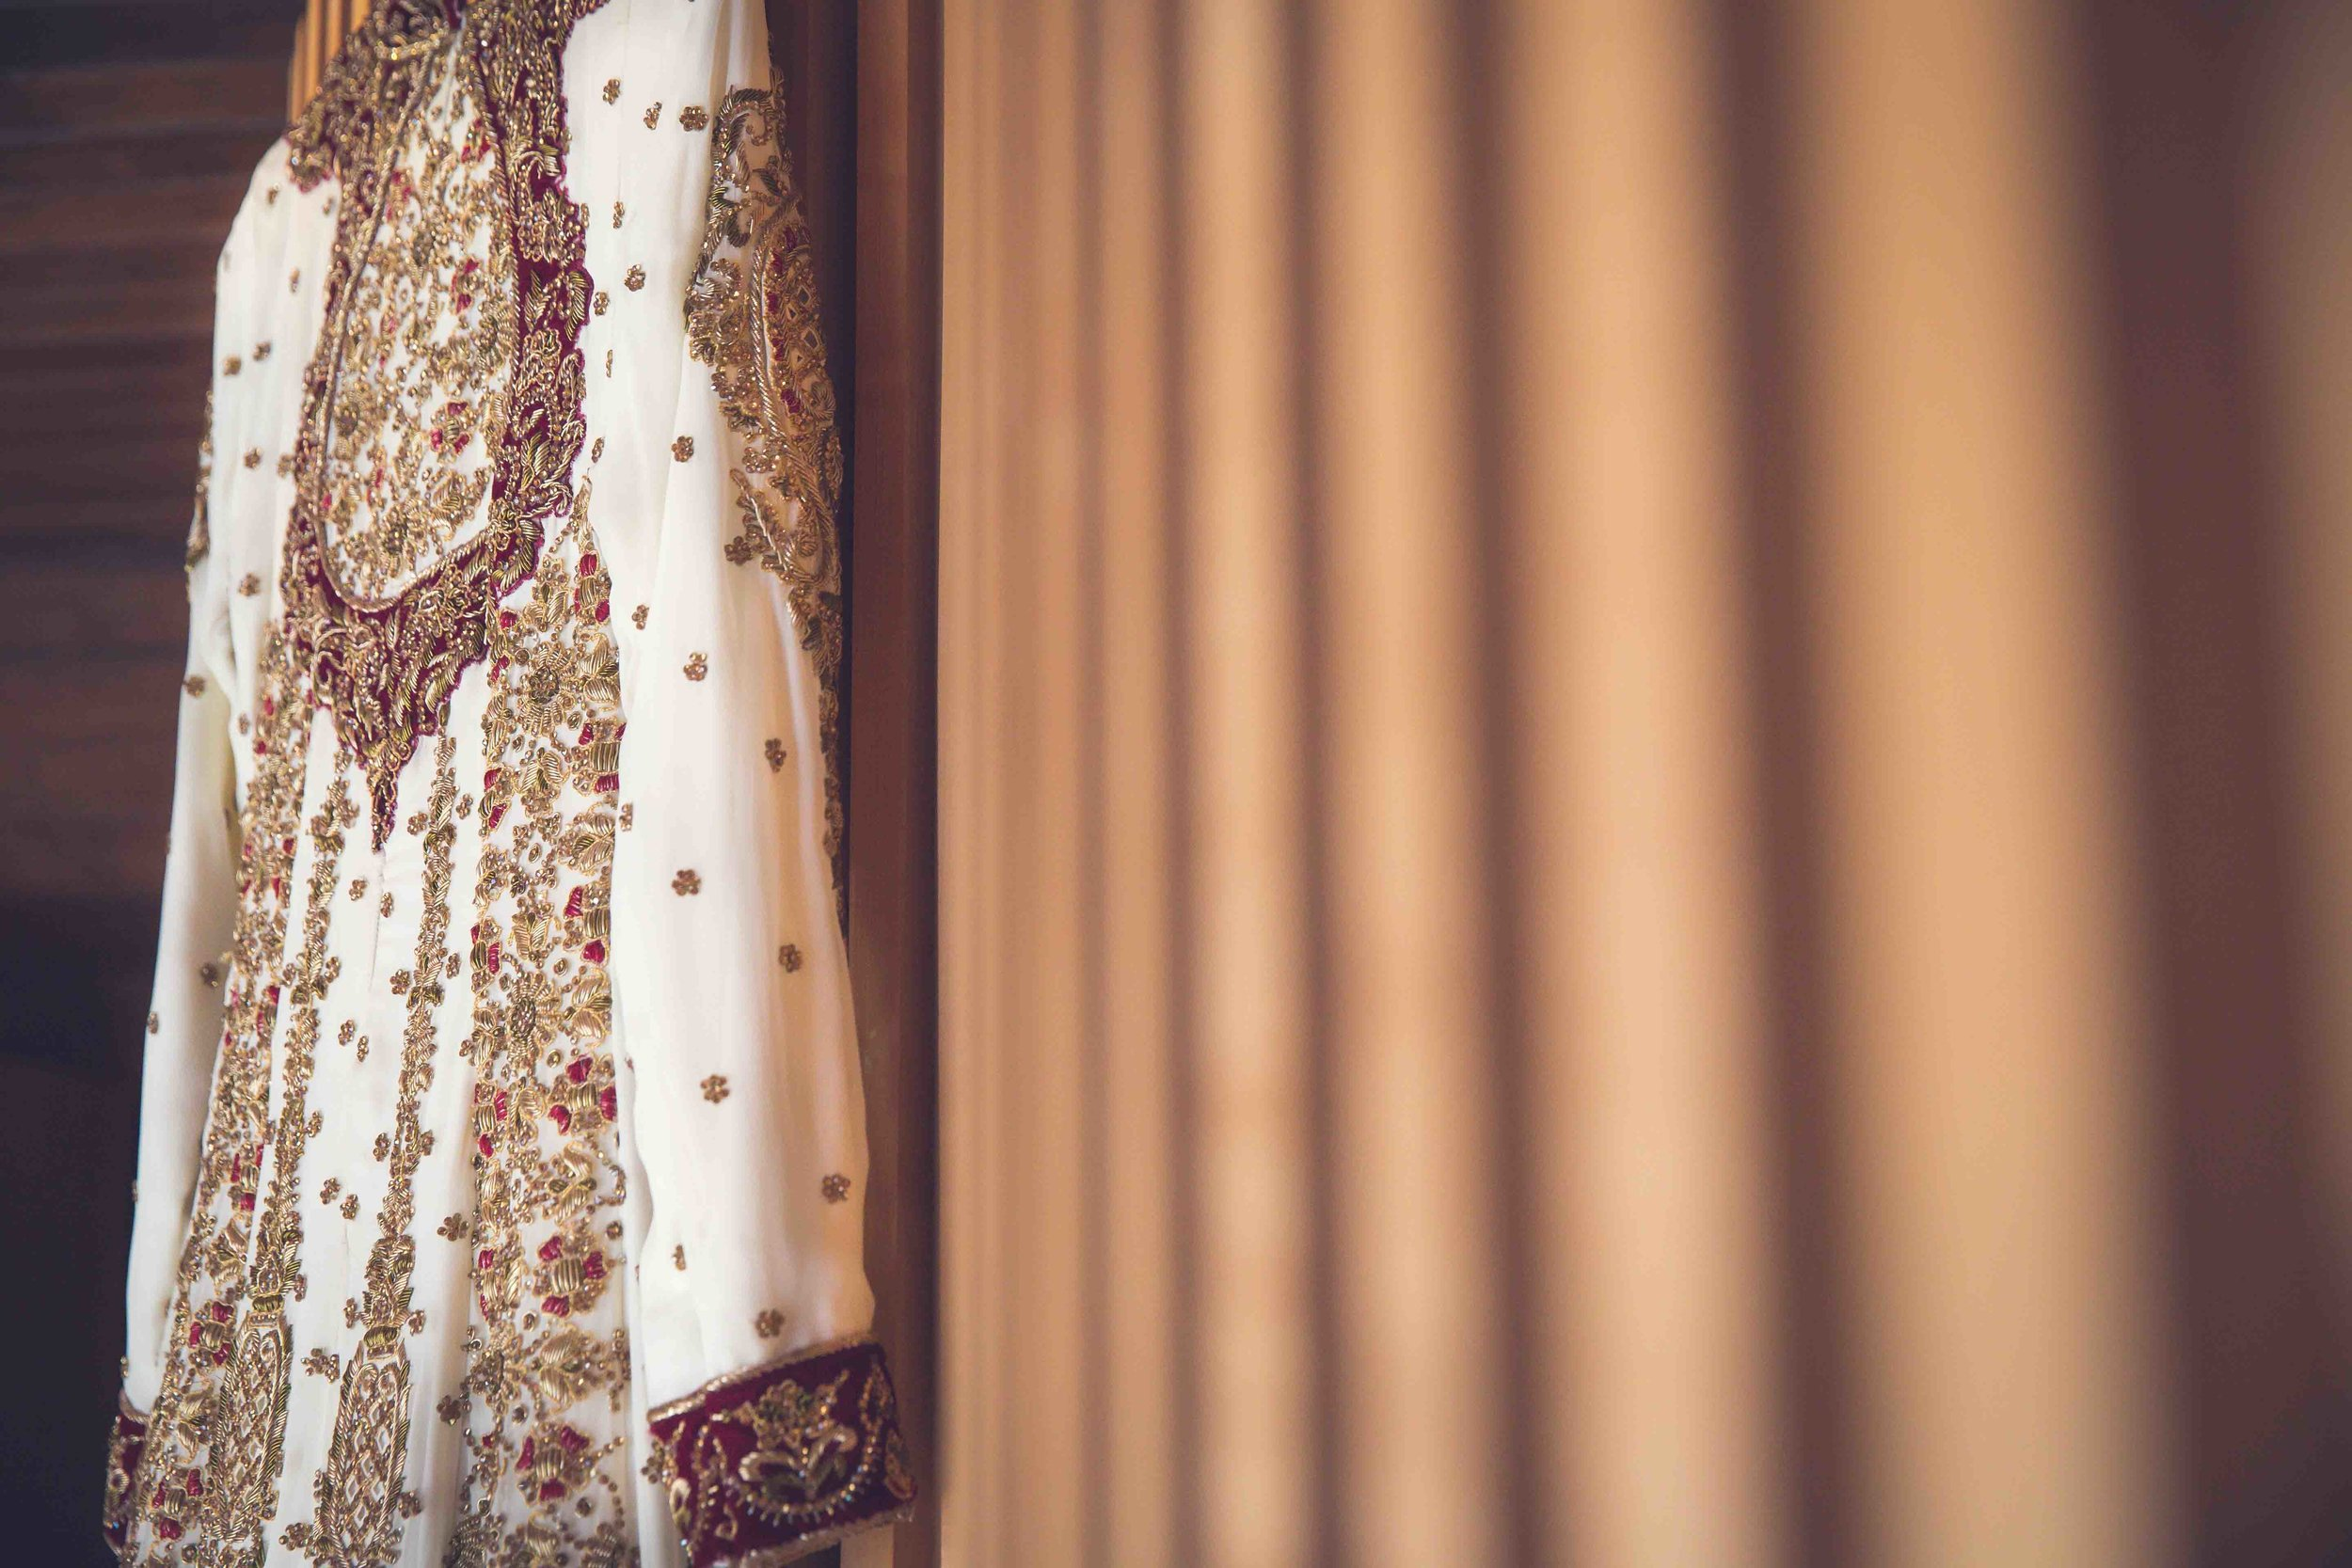 Opu Sultan Photography Asian wedding photography scotland edinburgh glasgow manchester birmingham london-172.jpg